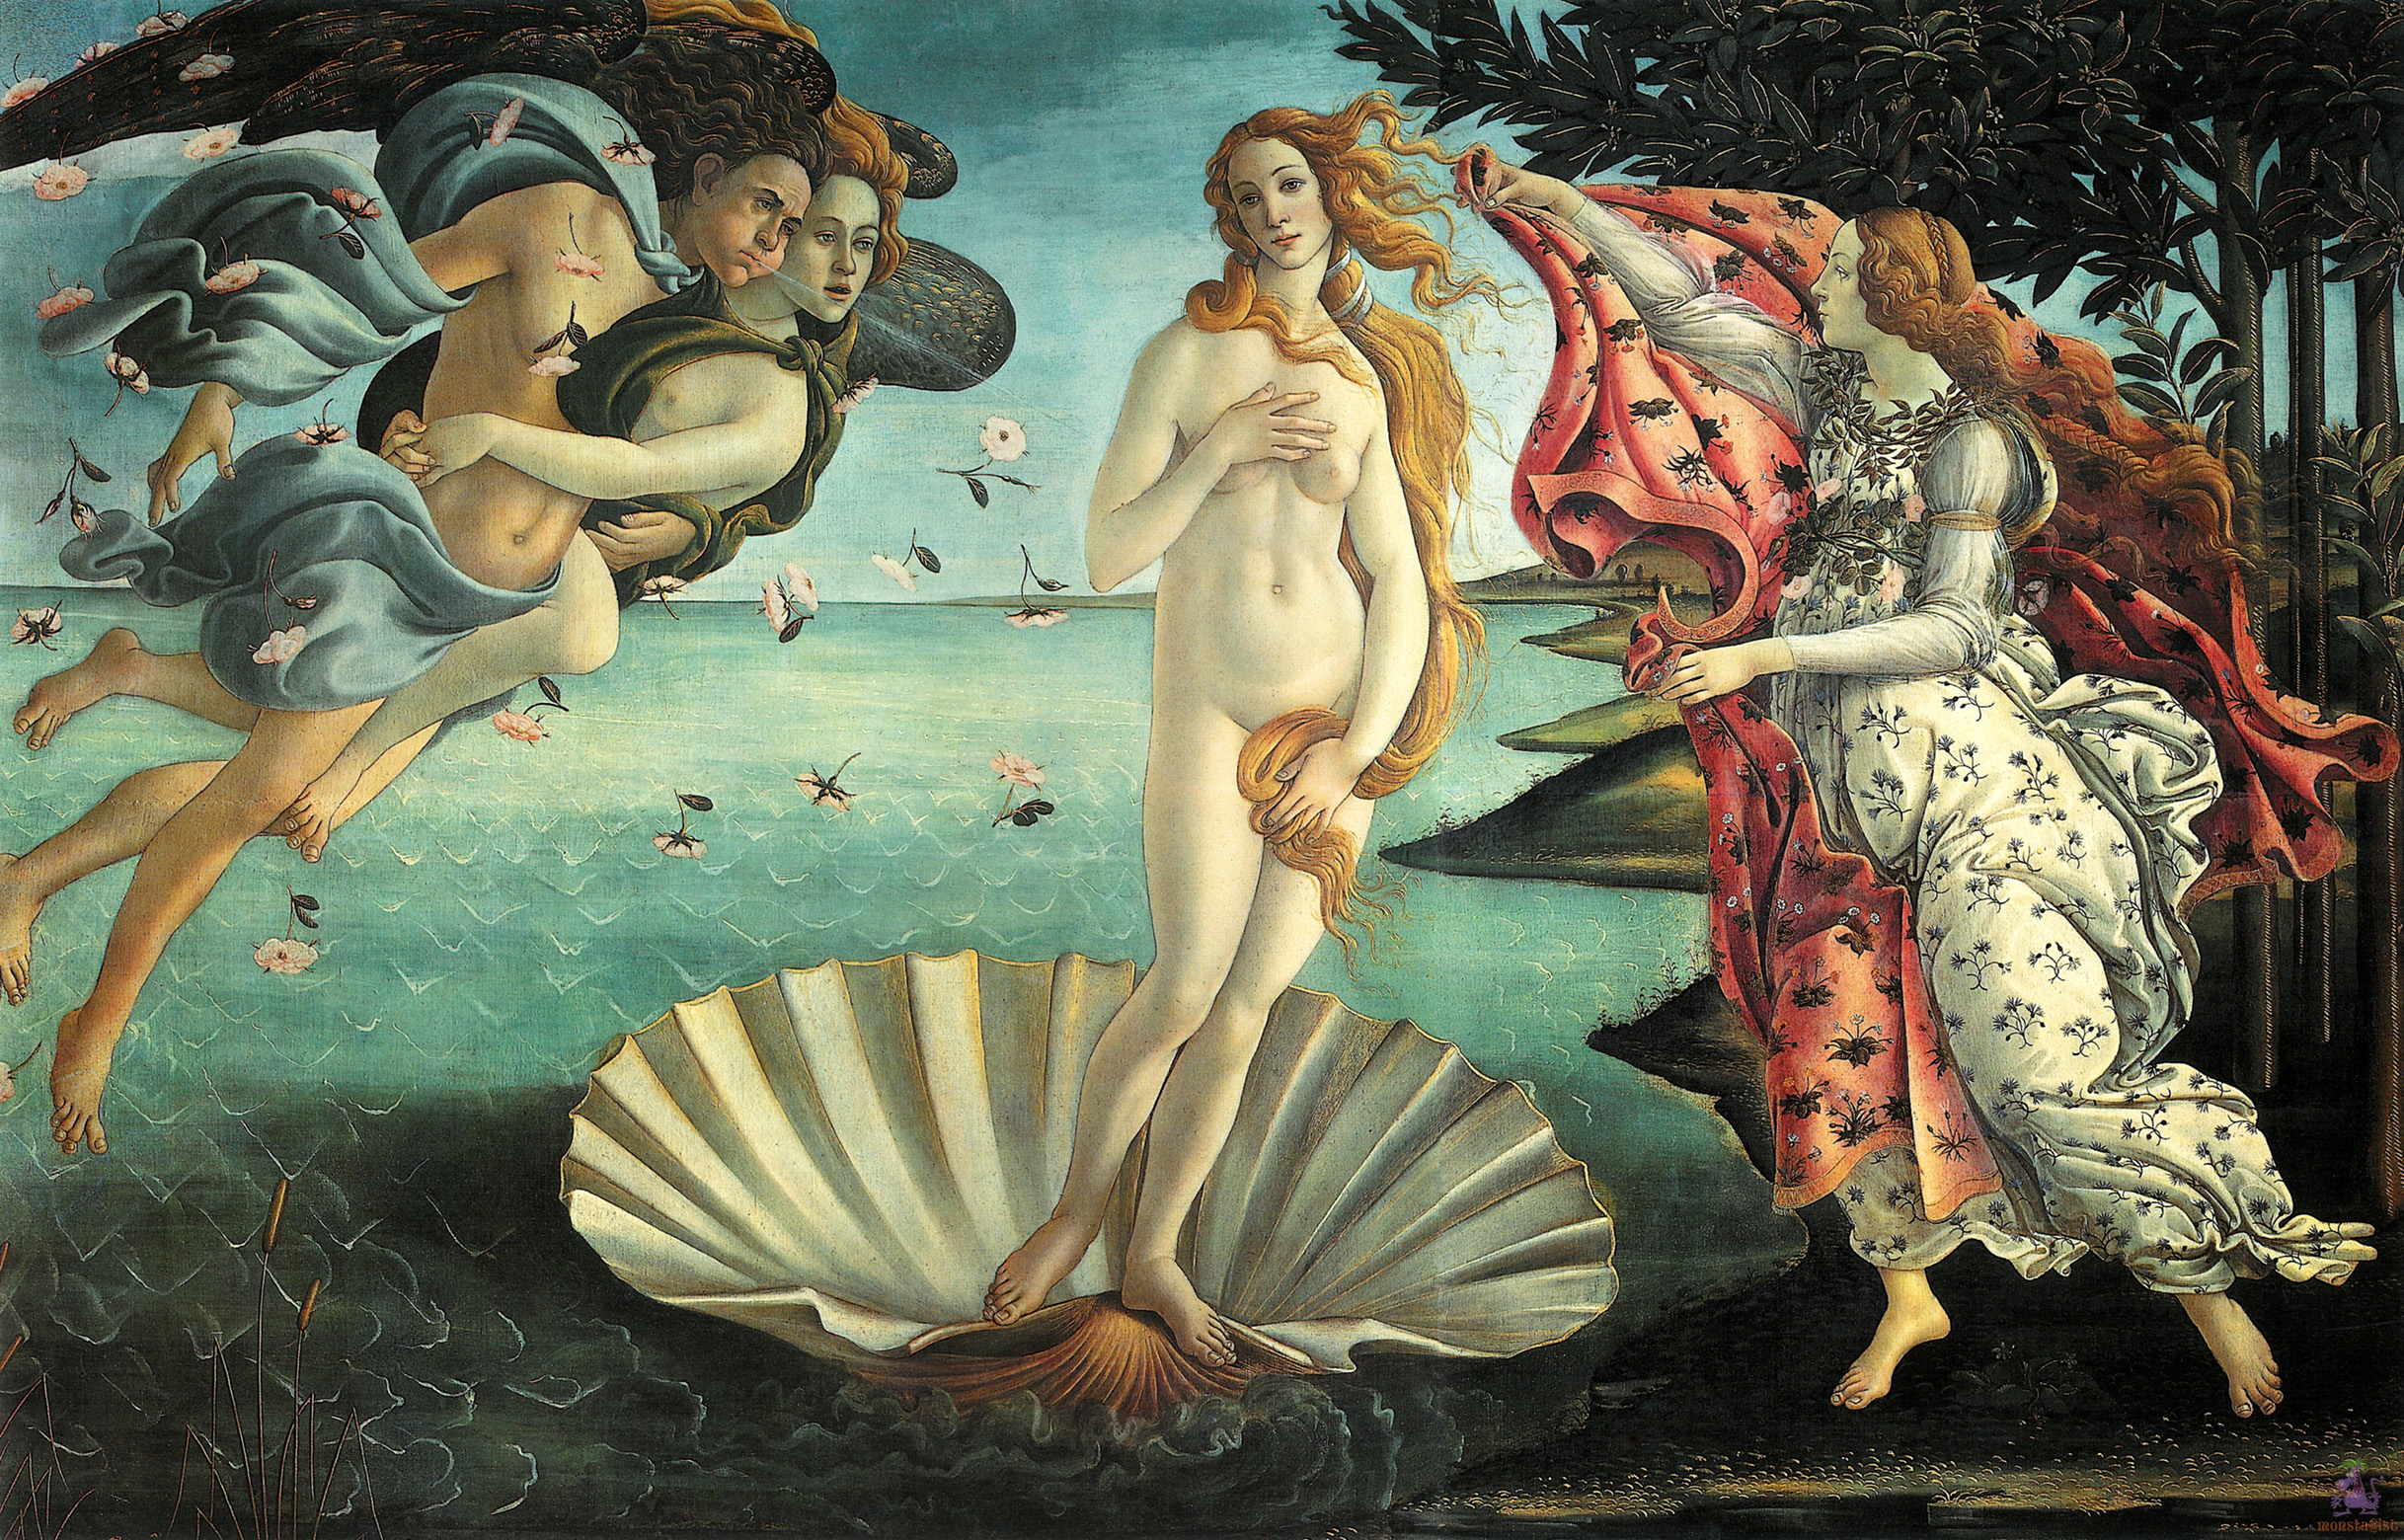 http://upload.wikimedia.org/wikipedia/commons/archive/4/47/20090502164923!La_nascita_di_Venere_(Botticelli).jpg